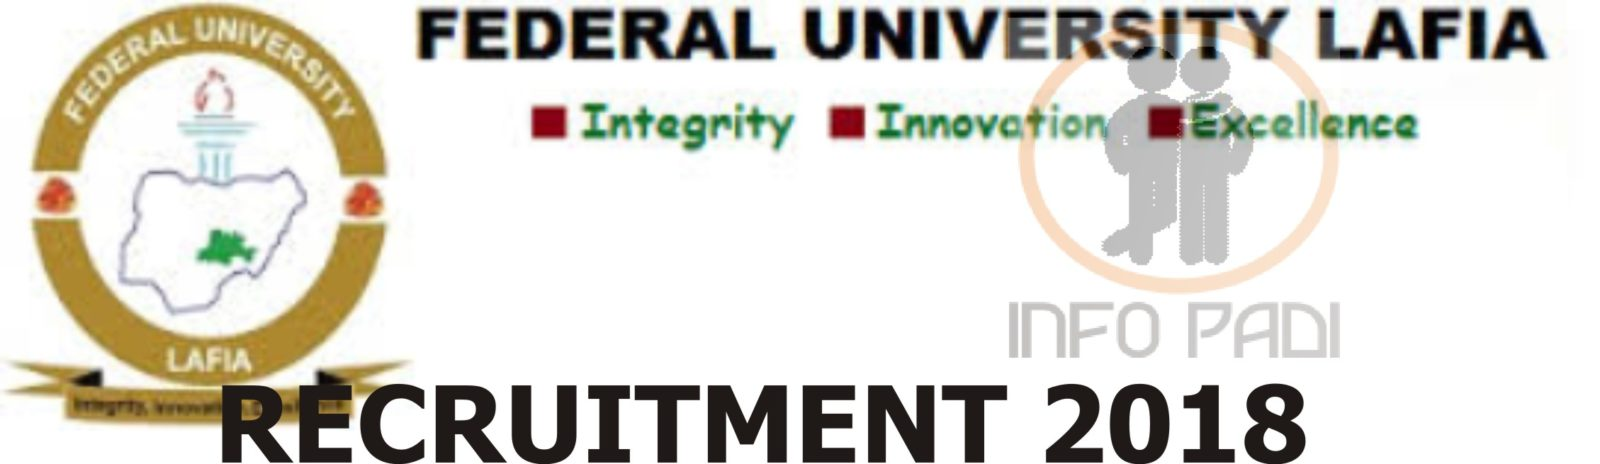 UNIVERSITY RECRUITMENT- Federal University Lafia 2018/2019 Recruitment for Graduates